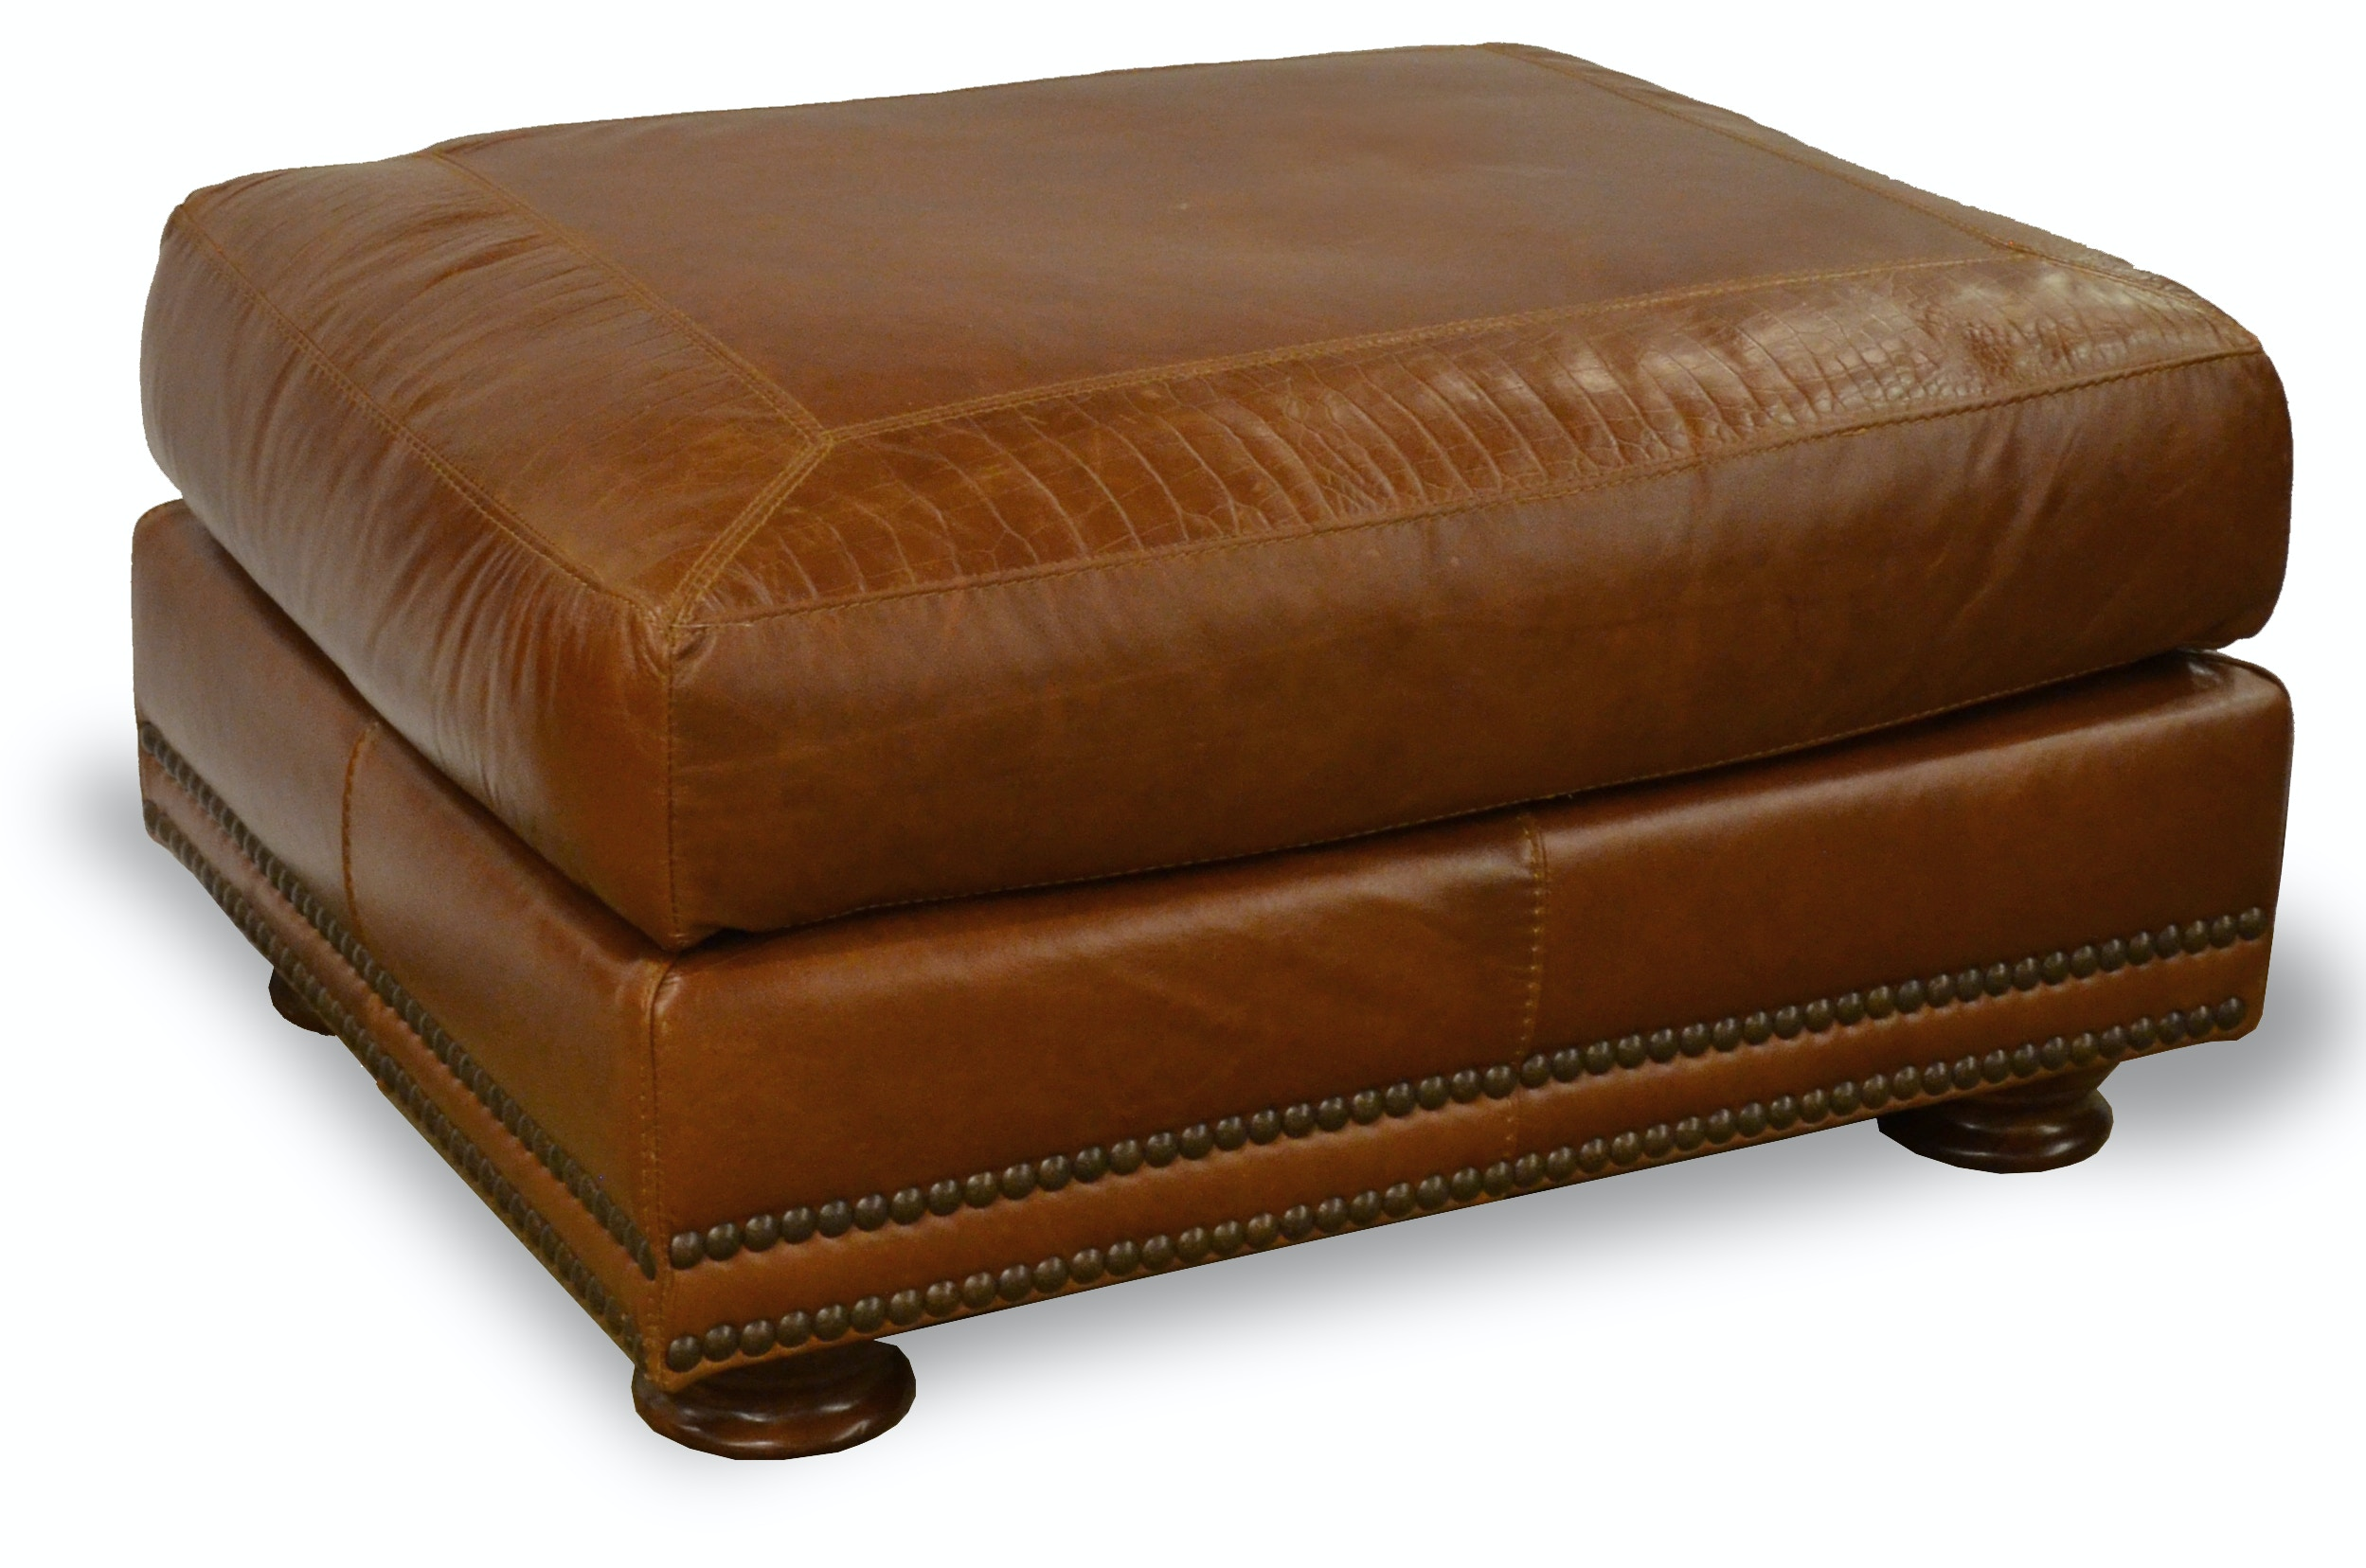 Kittles Mattress Maxx ... Living Room Brady Ottoman 517219 - Kittle's Furniture - Indiana